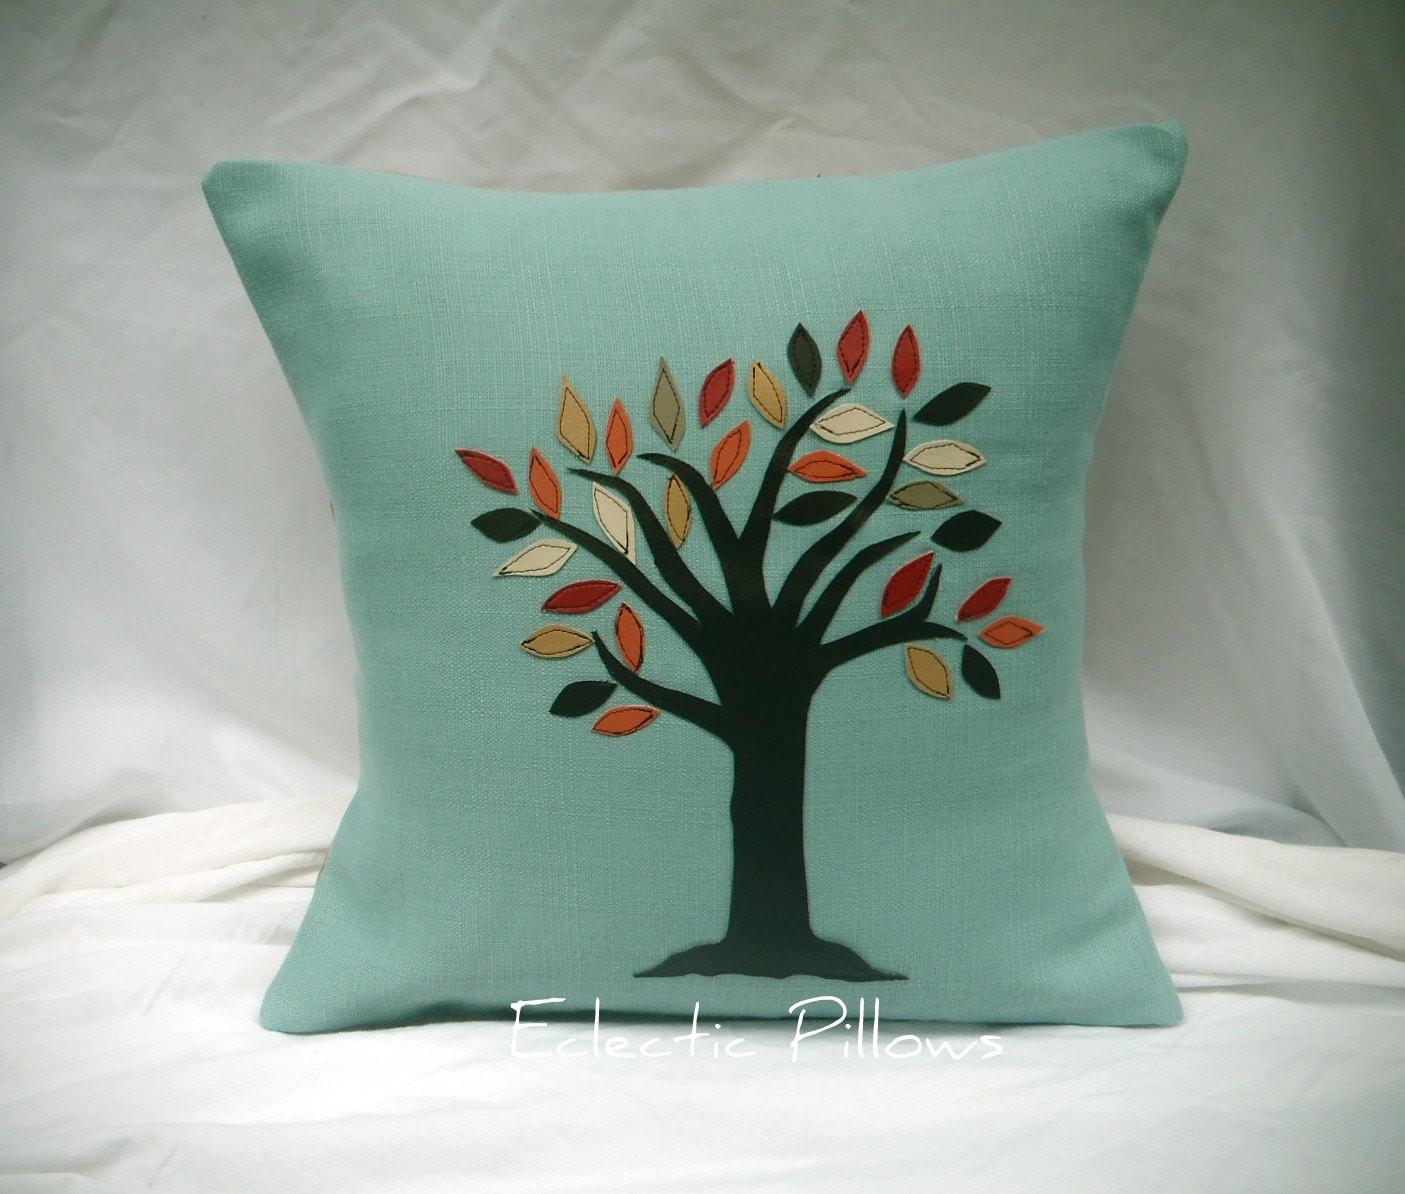 Appliqued Fall Leaves Tree Accent Pillow